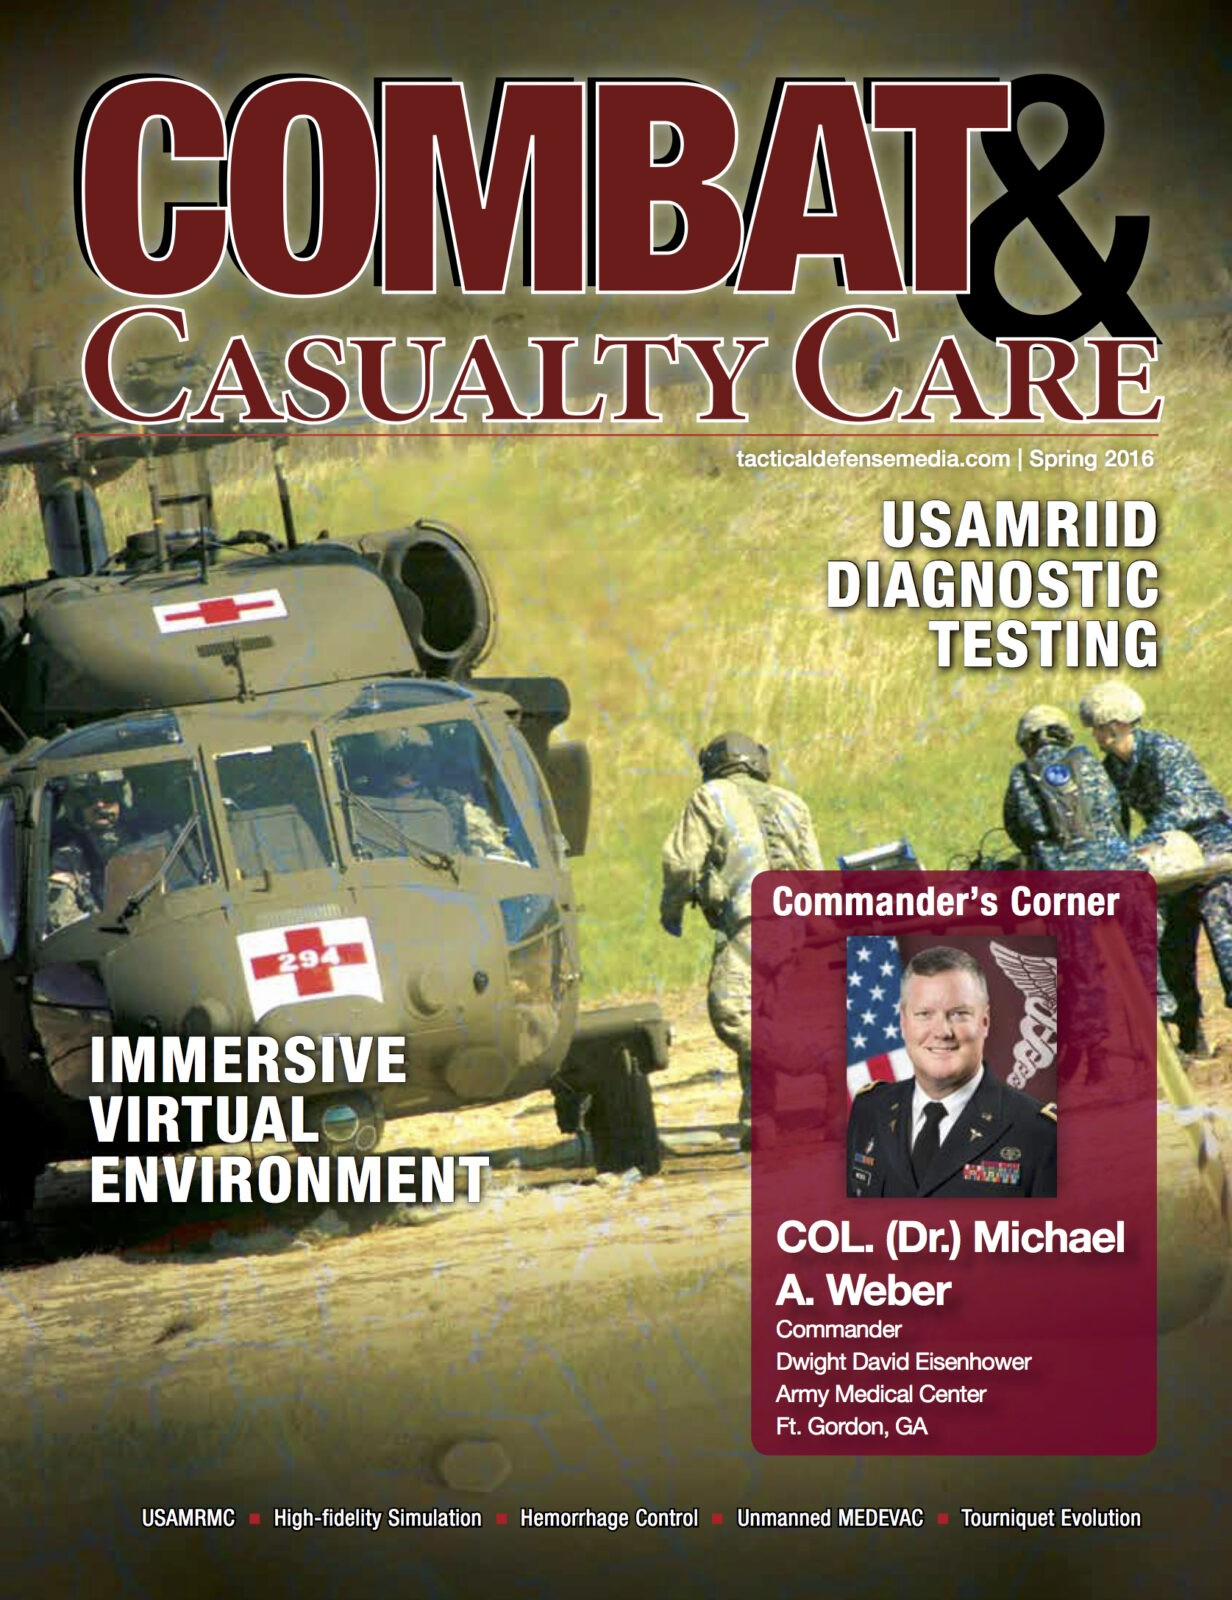 Tactical Defense Magazines And Military Publications